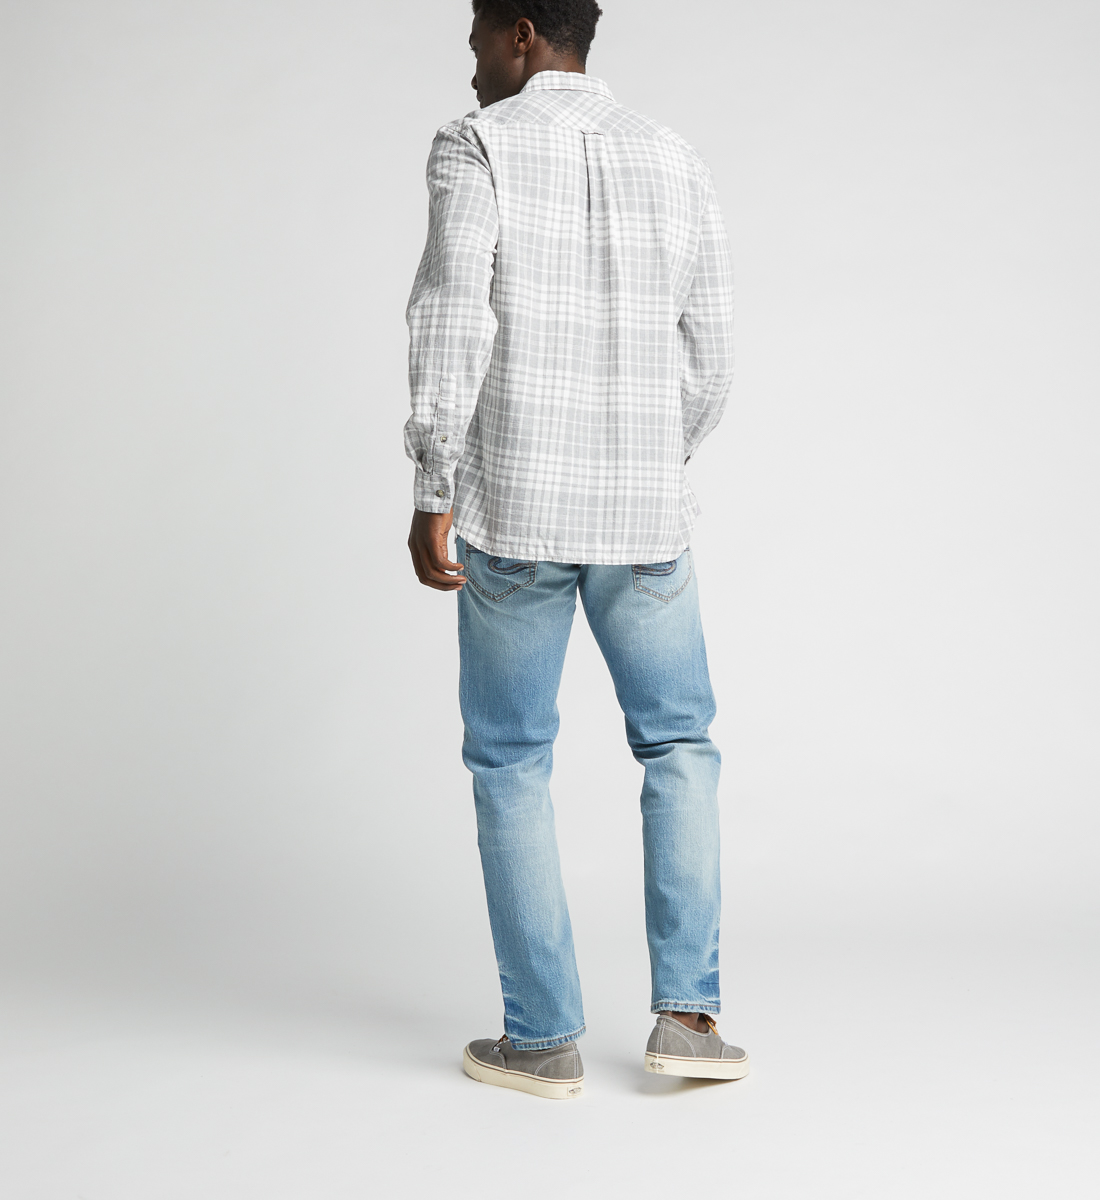 Charly Long-Sleeve Plaid Button-Down Shirt,Grey Side